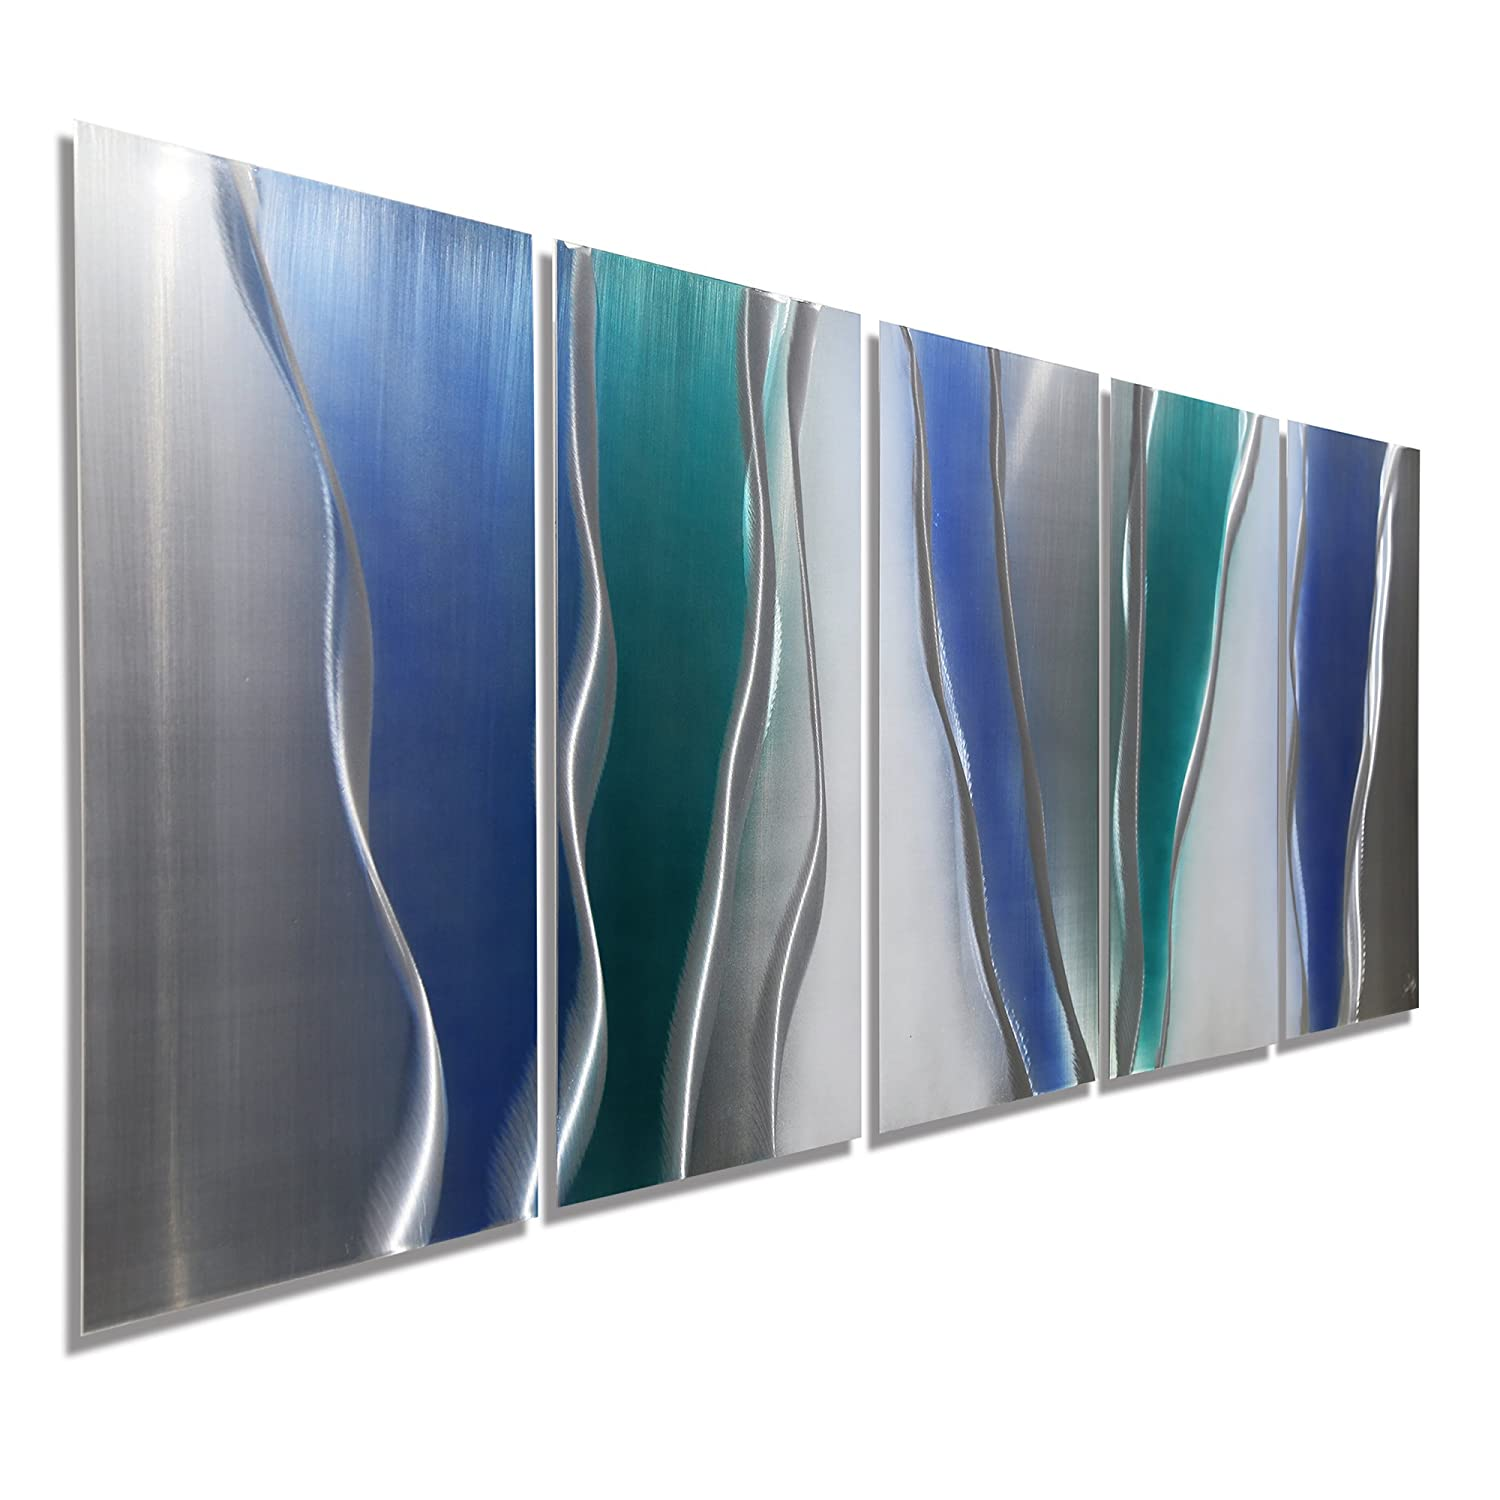 Large bright blue teal and silver metallic contemporary abstract painting home decor home accent modern metal wall sculpture glacier falls by jon